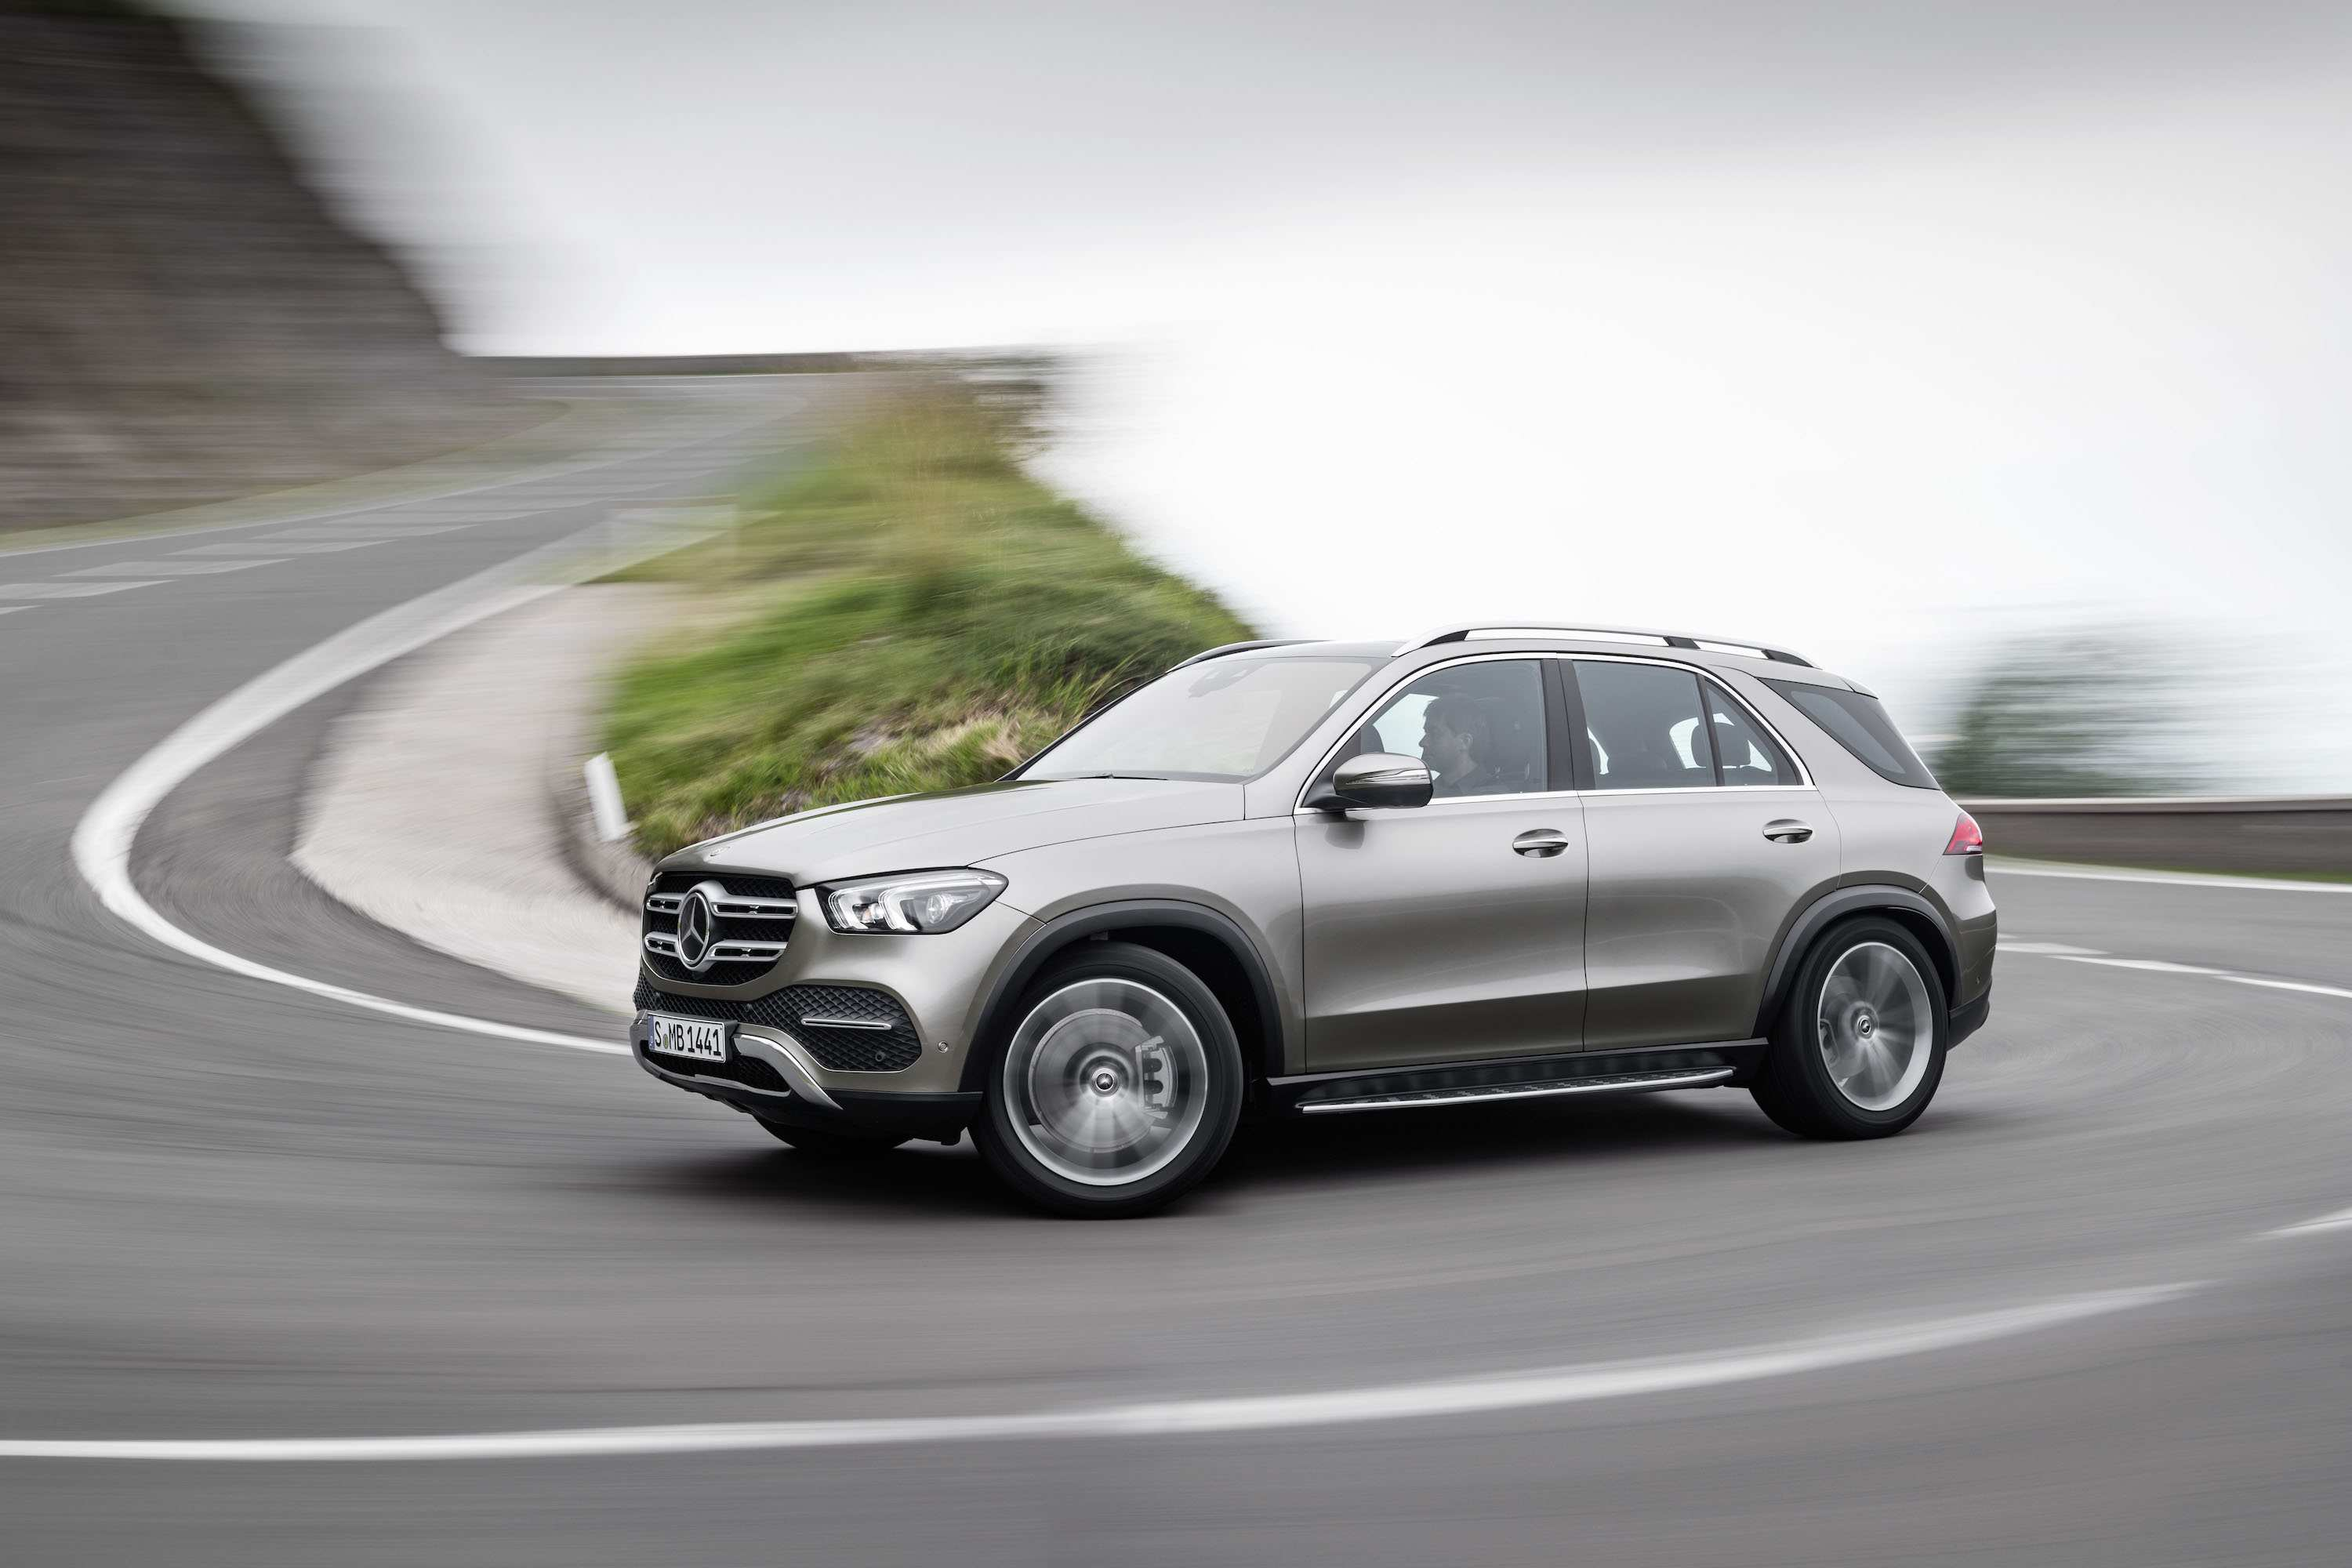 70 All New Mercedes Ml 2020 Wallpaper with Mercedes Ml 2020